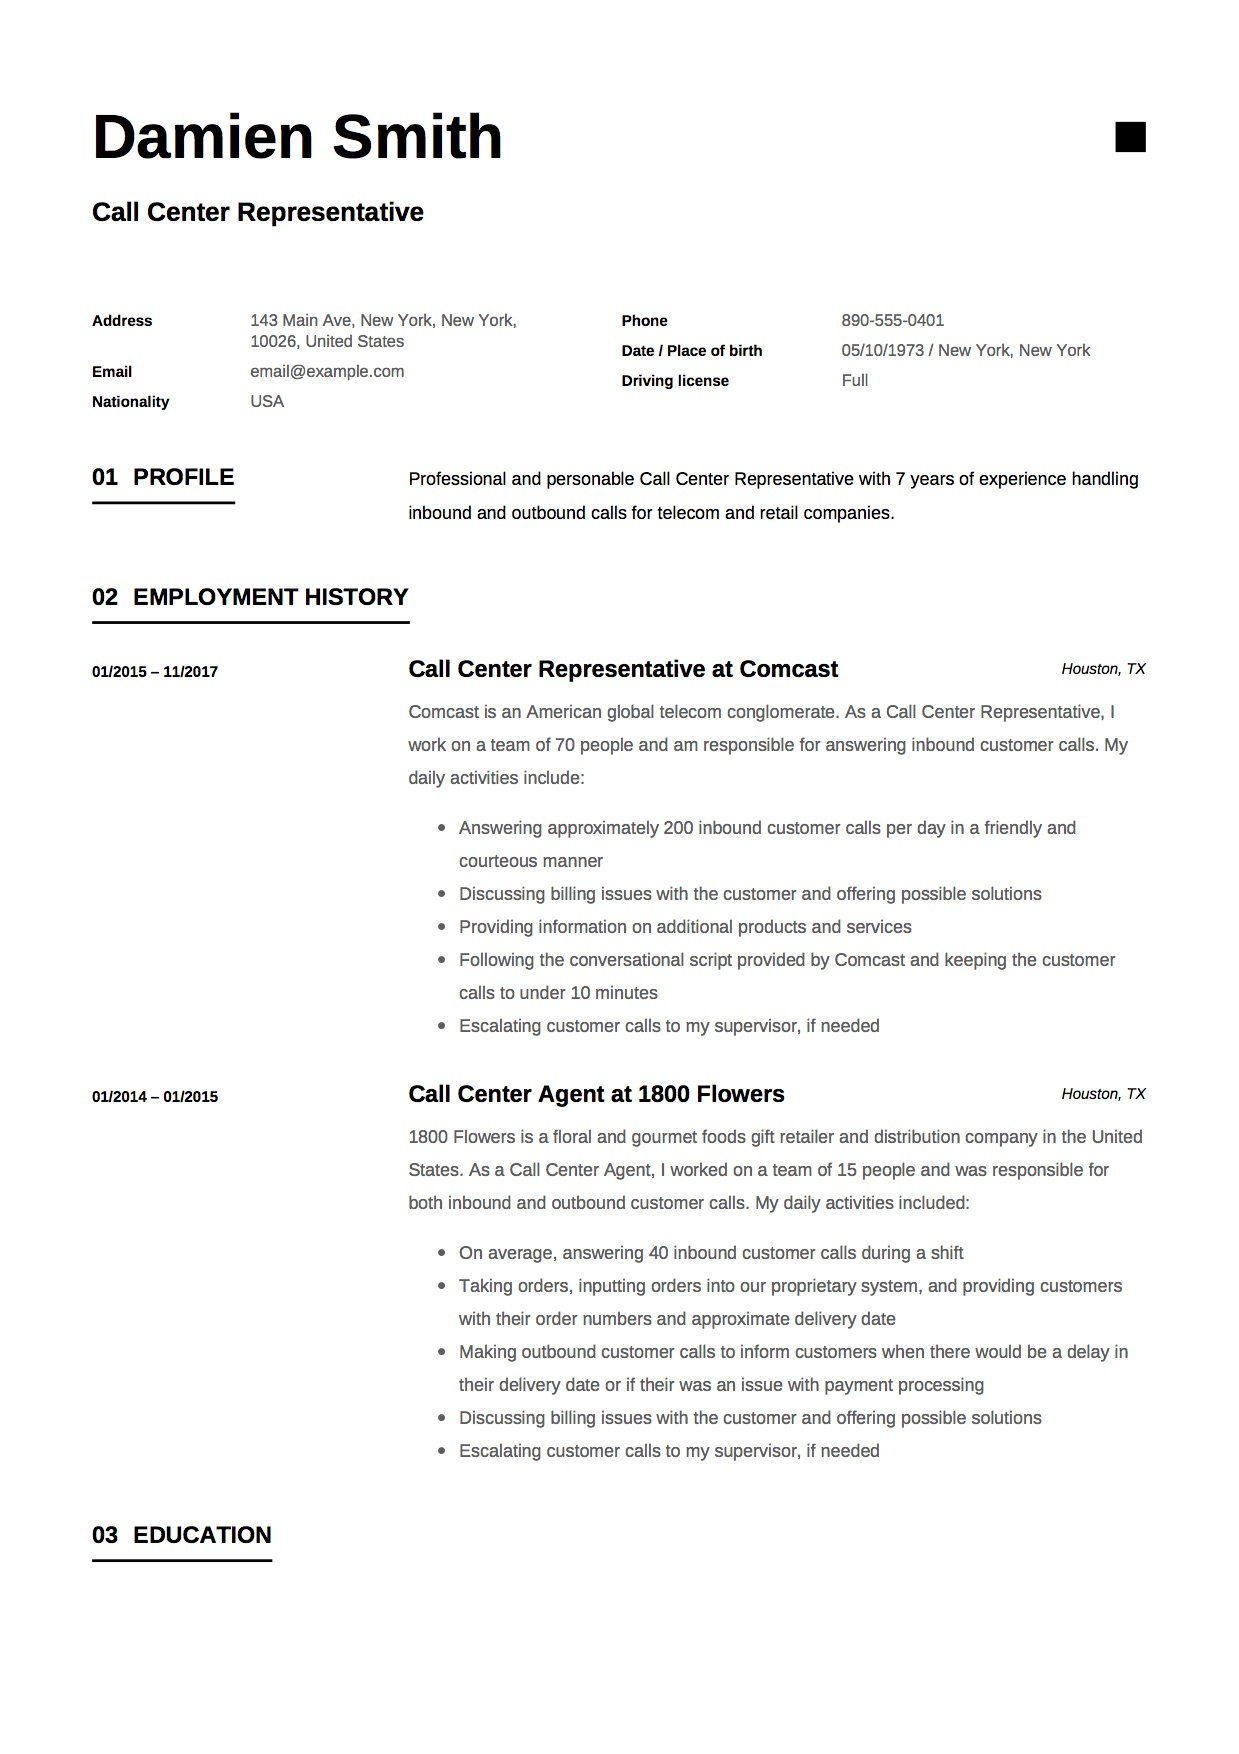 Call Center Representative Resume Sample